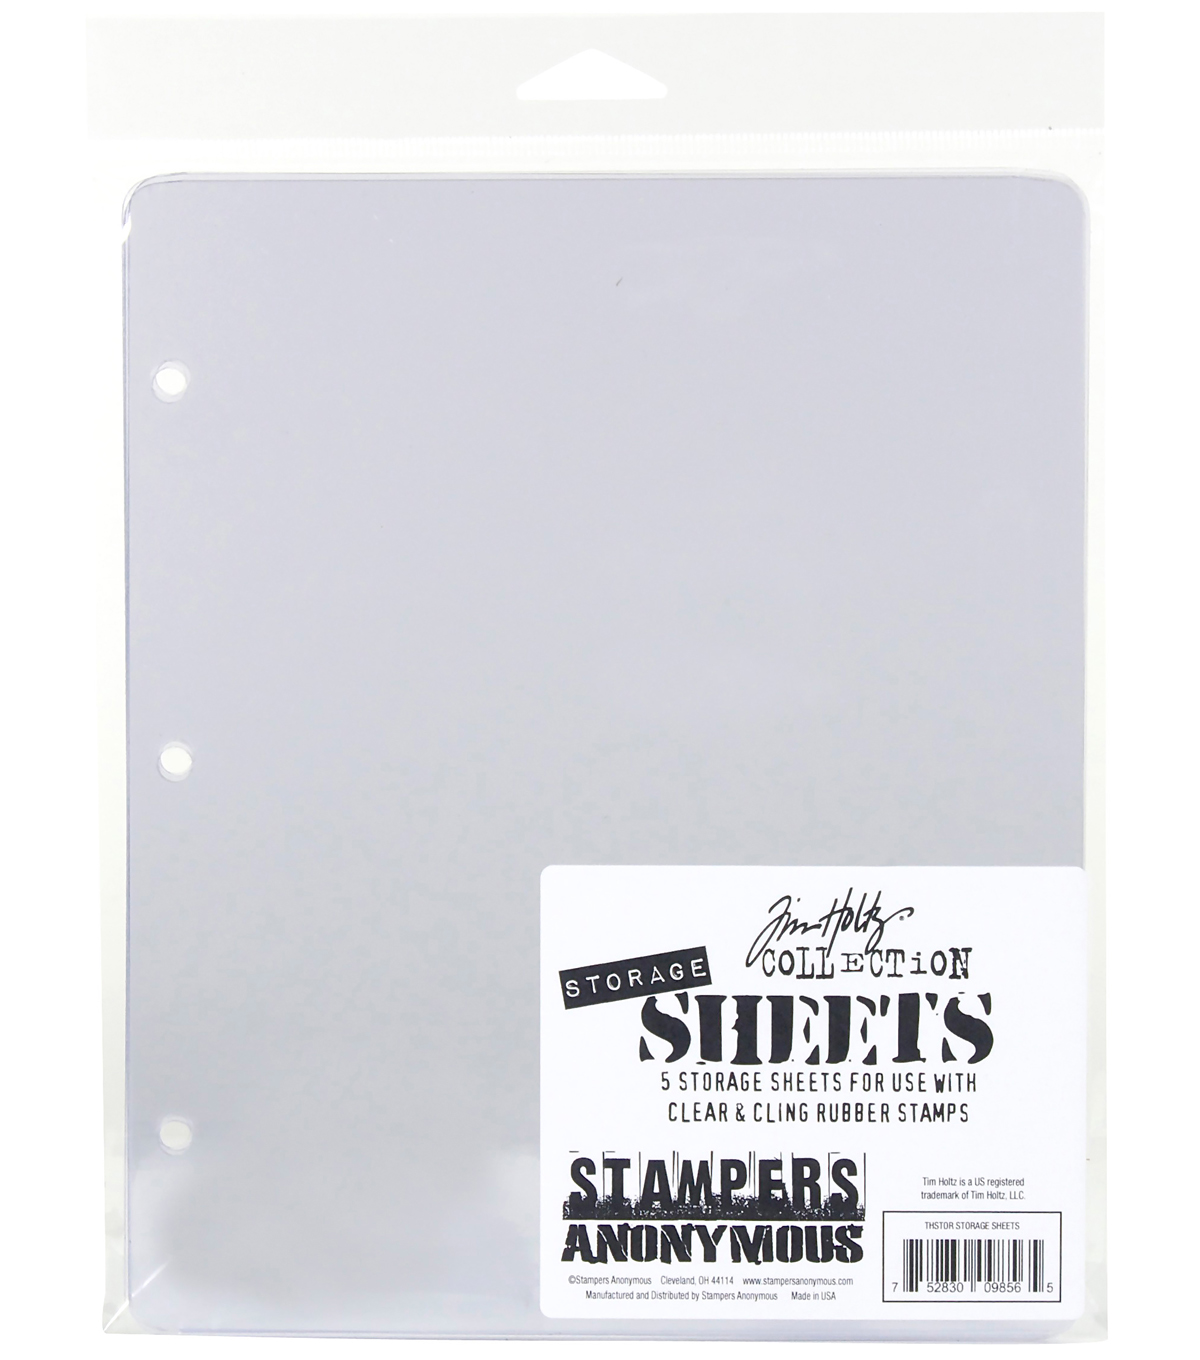 Stampers Anonymous Tim Holtz 5 pk Storage Sheets